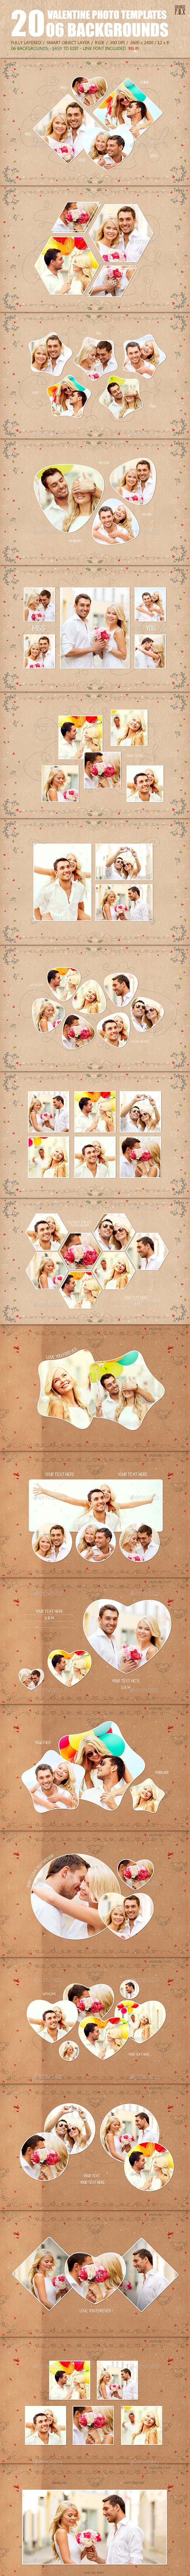 20 Valentine Photo Templates - Vol.01 - Miscellaneous Photo Templates